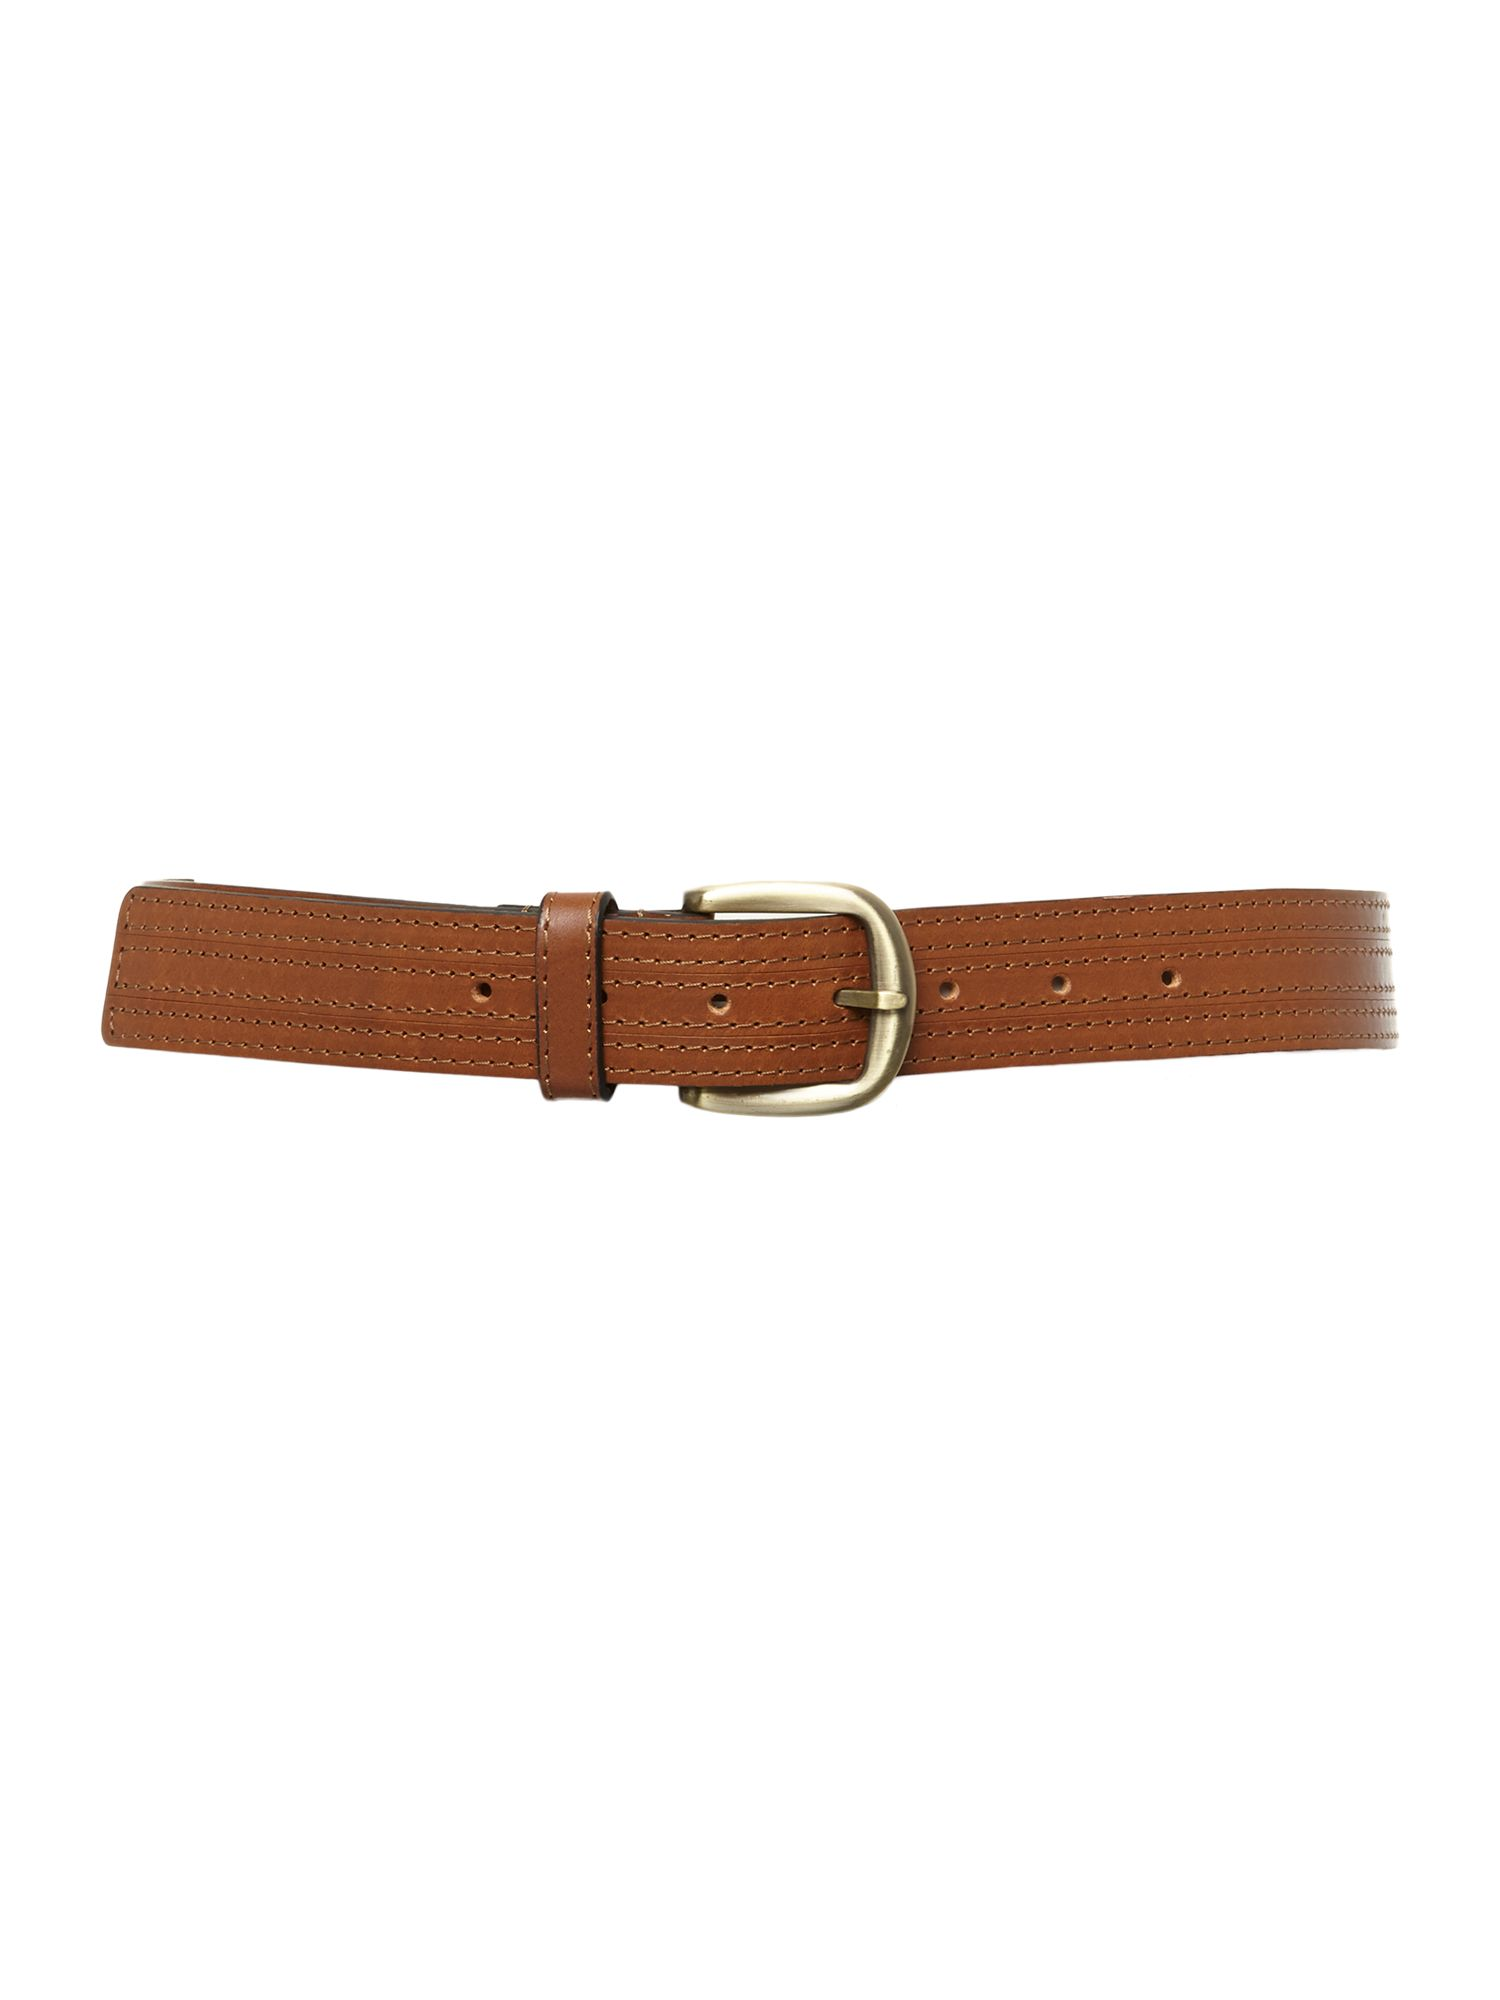 Mandy tan belt